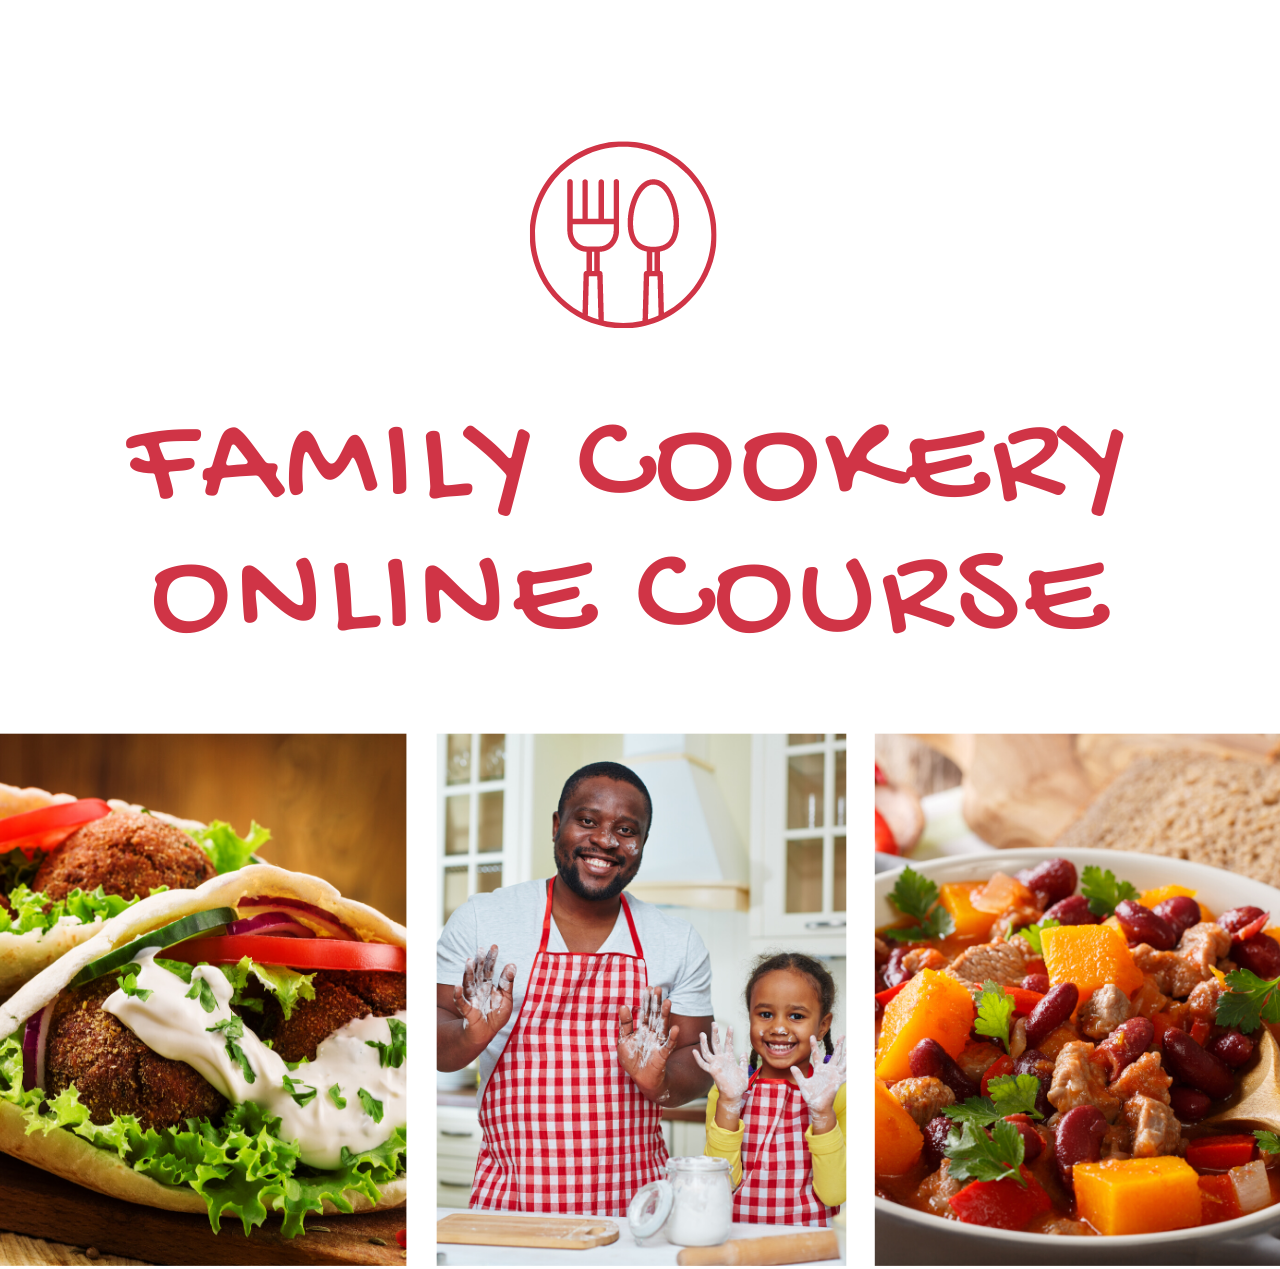 SUMMER CAMP - FAMILY COOK & EAT